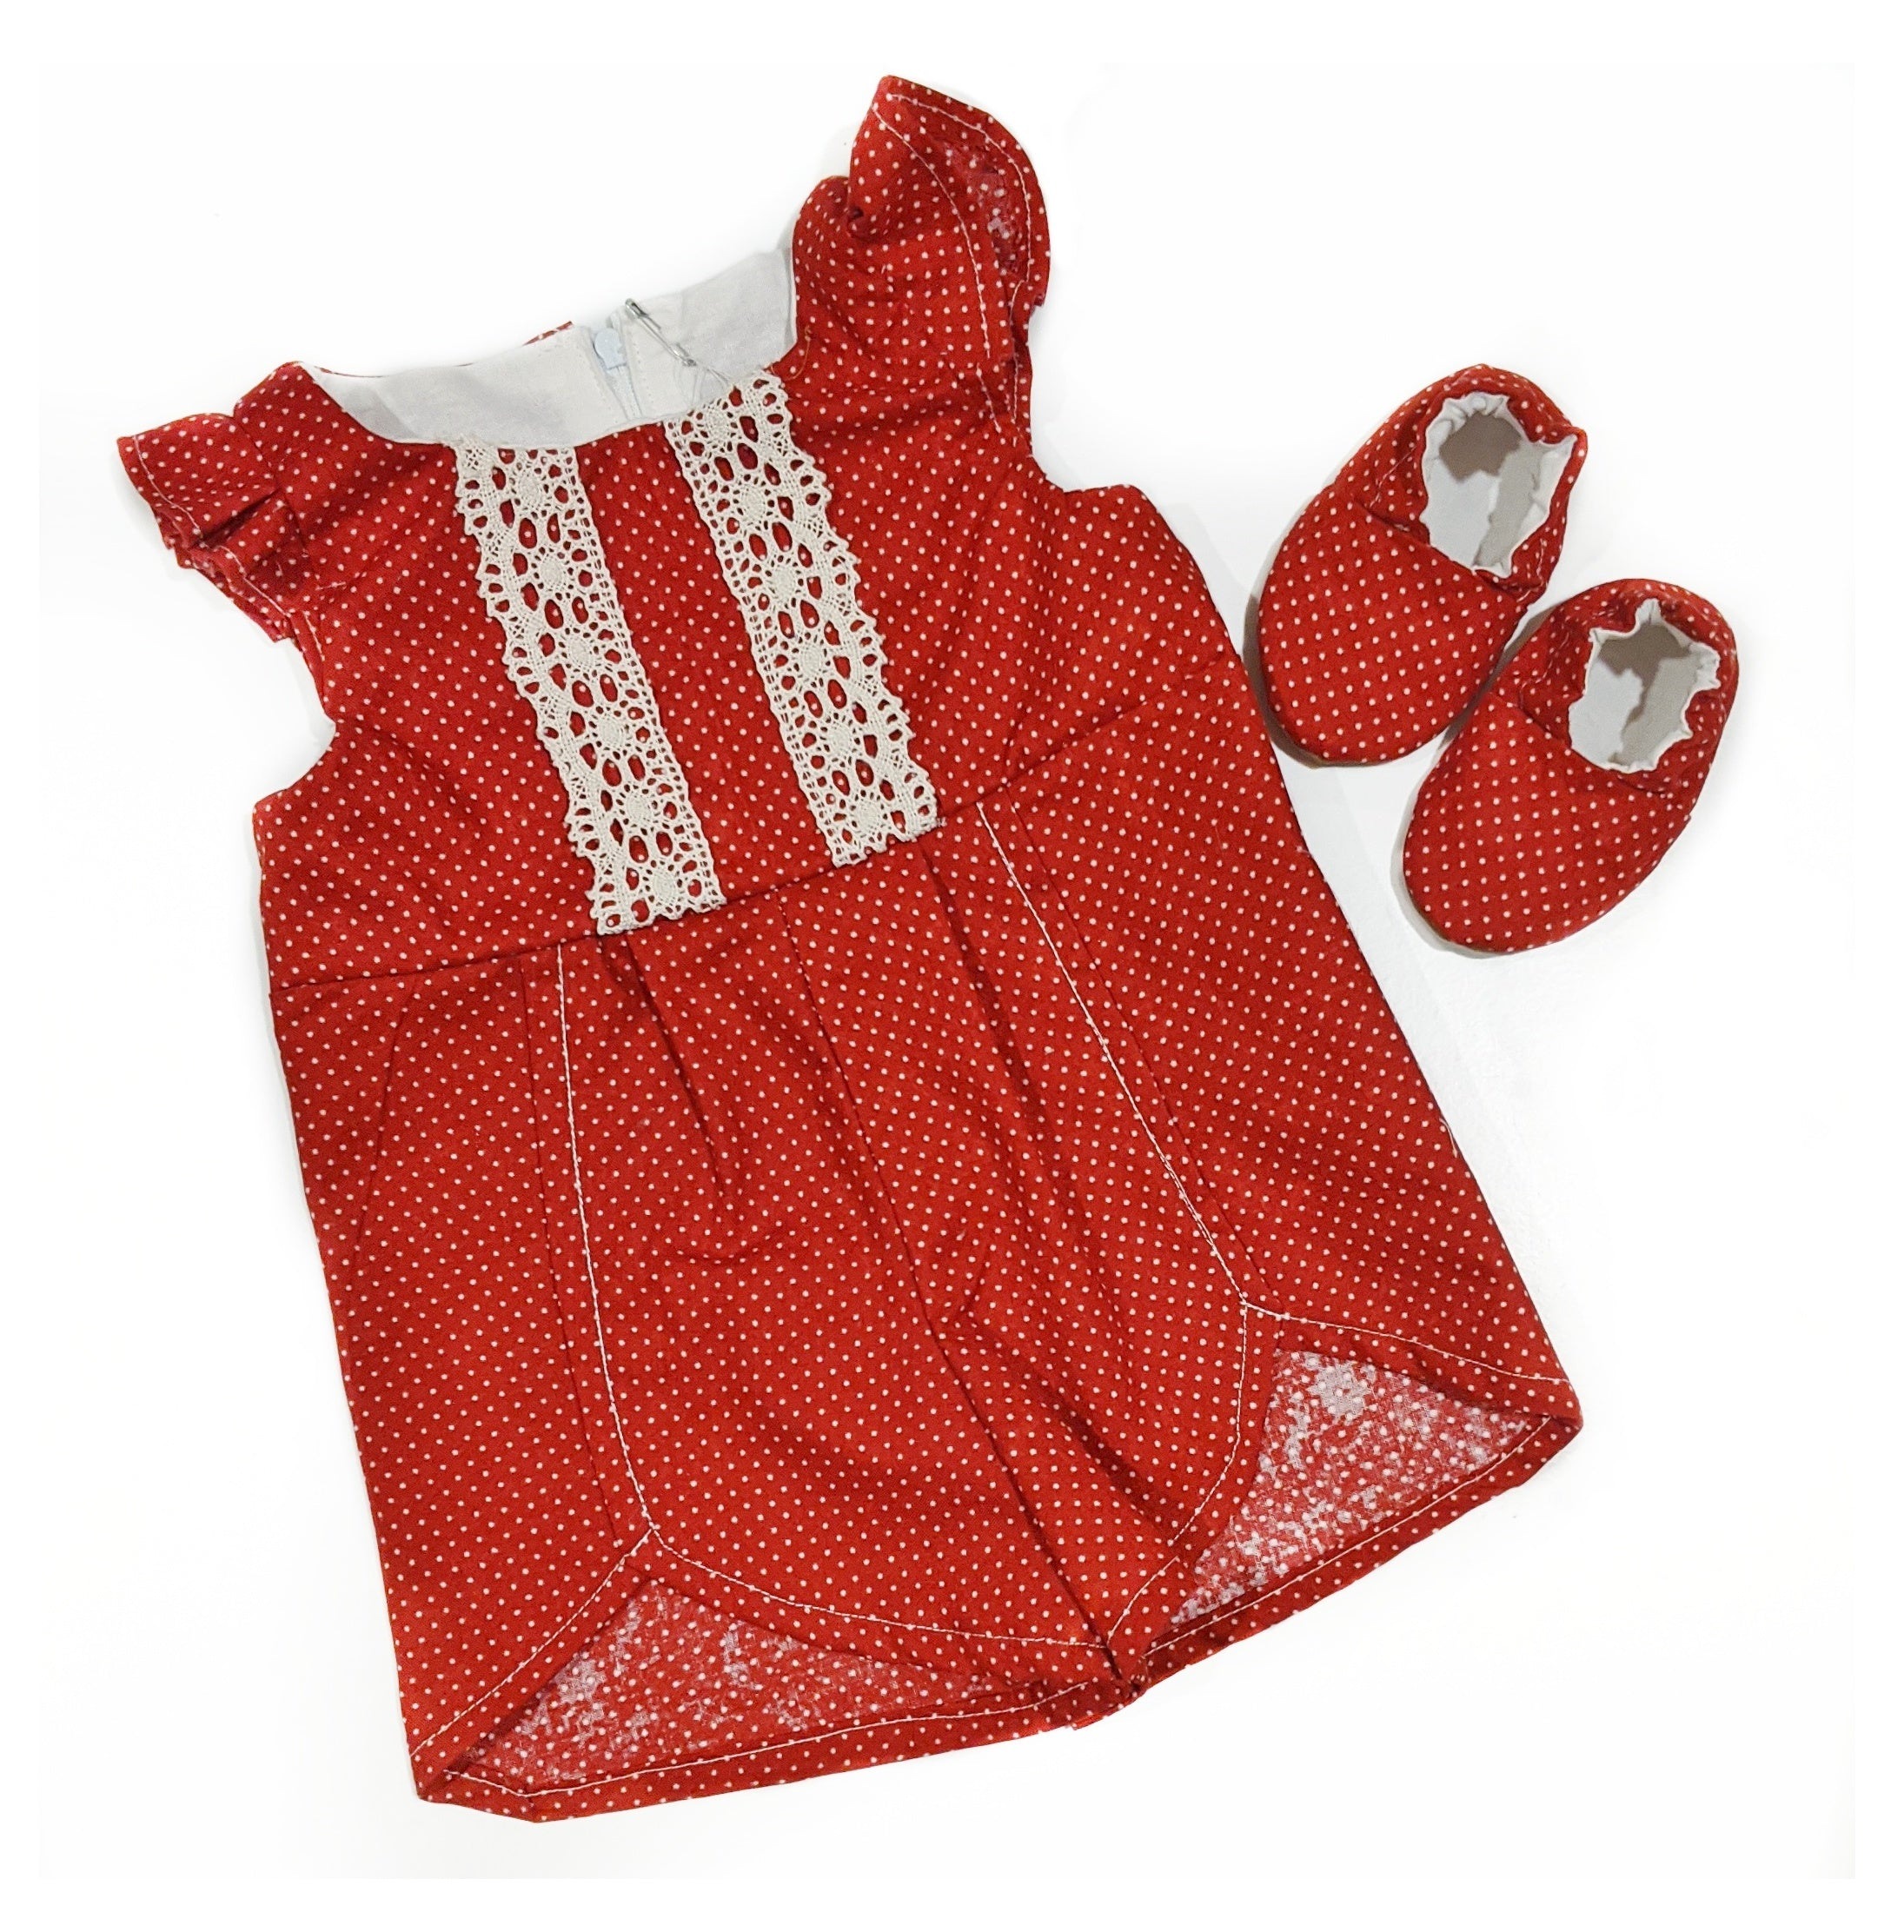 0-3 Month Rowan Romper Set